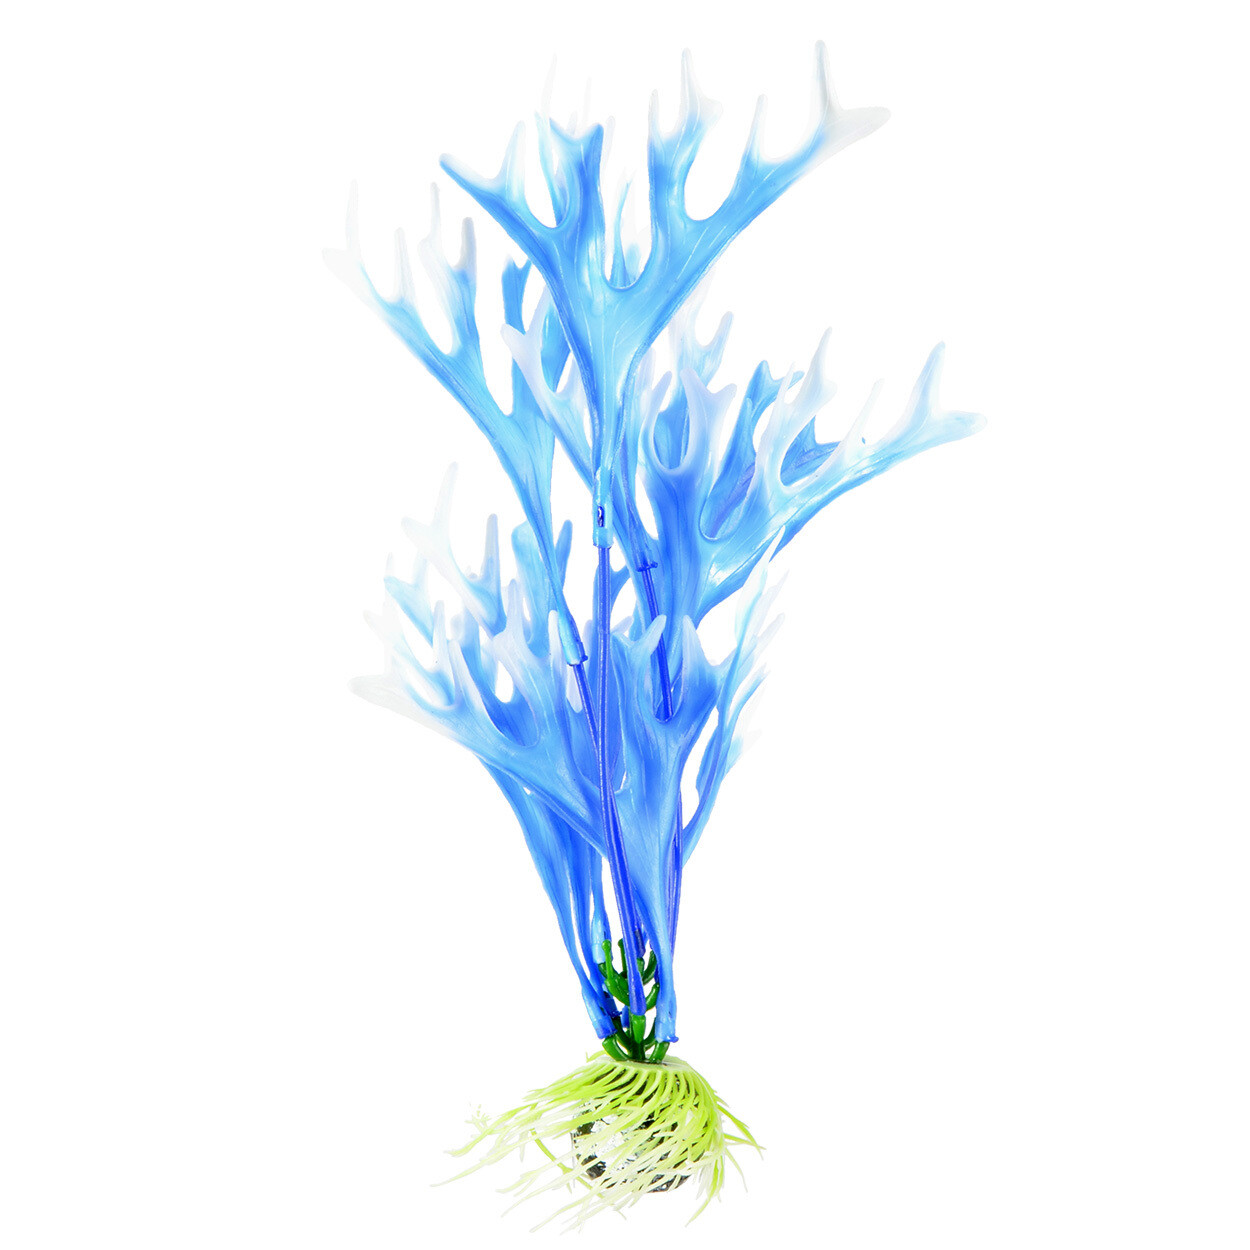 "Underwater Treasures 8"" - Blue Fire Fern"